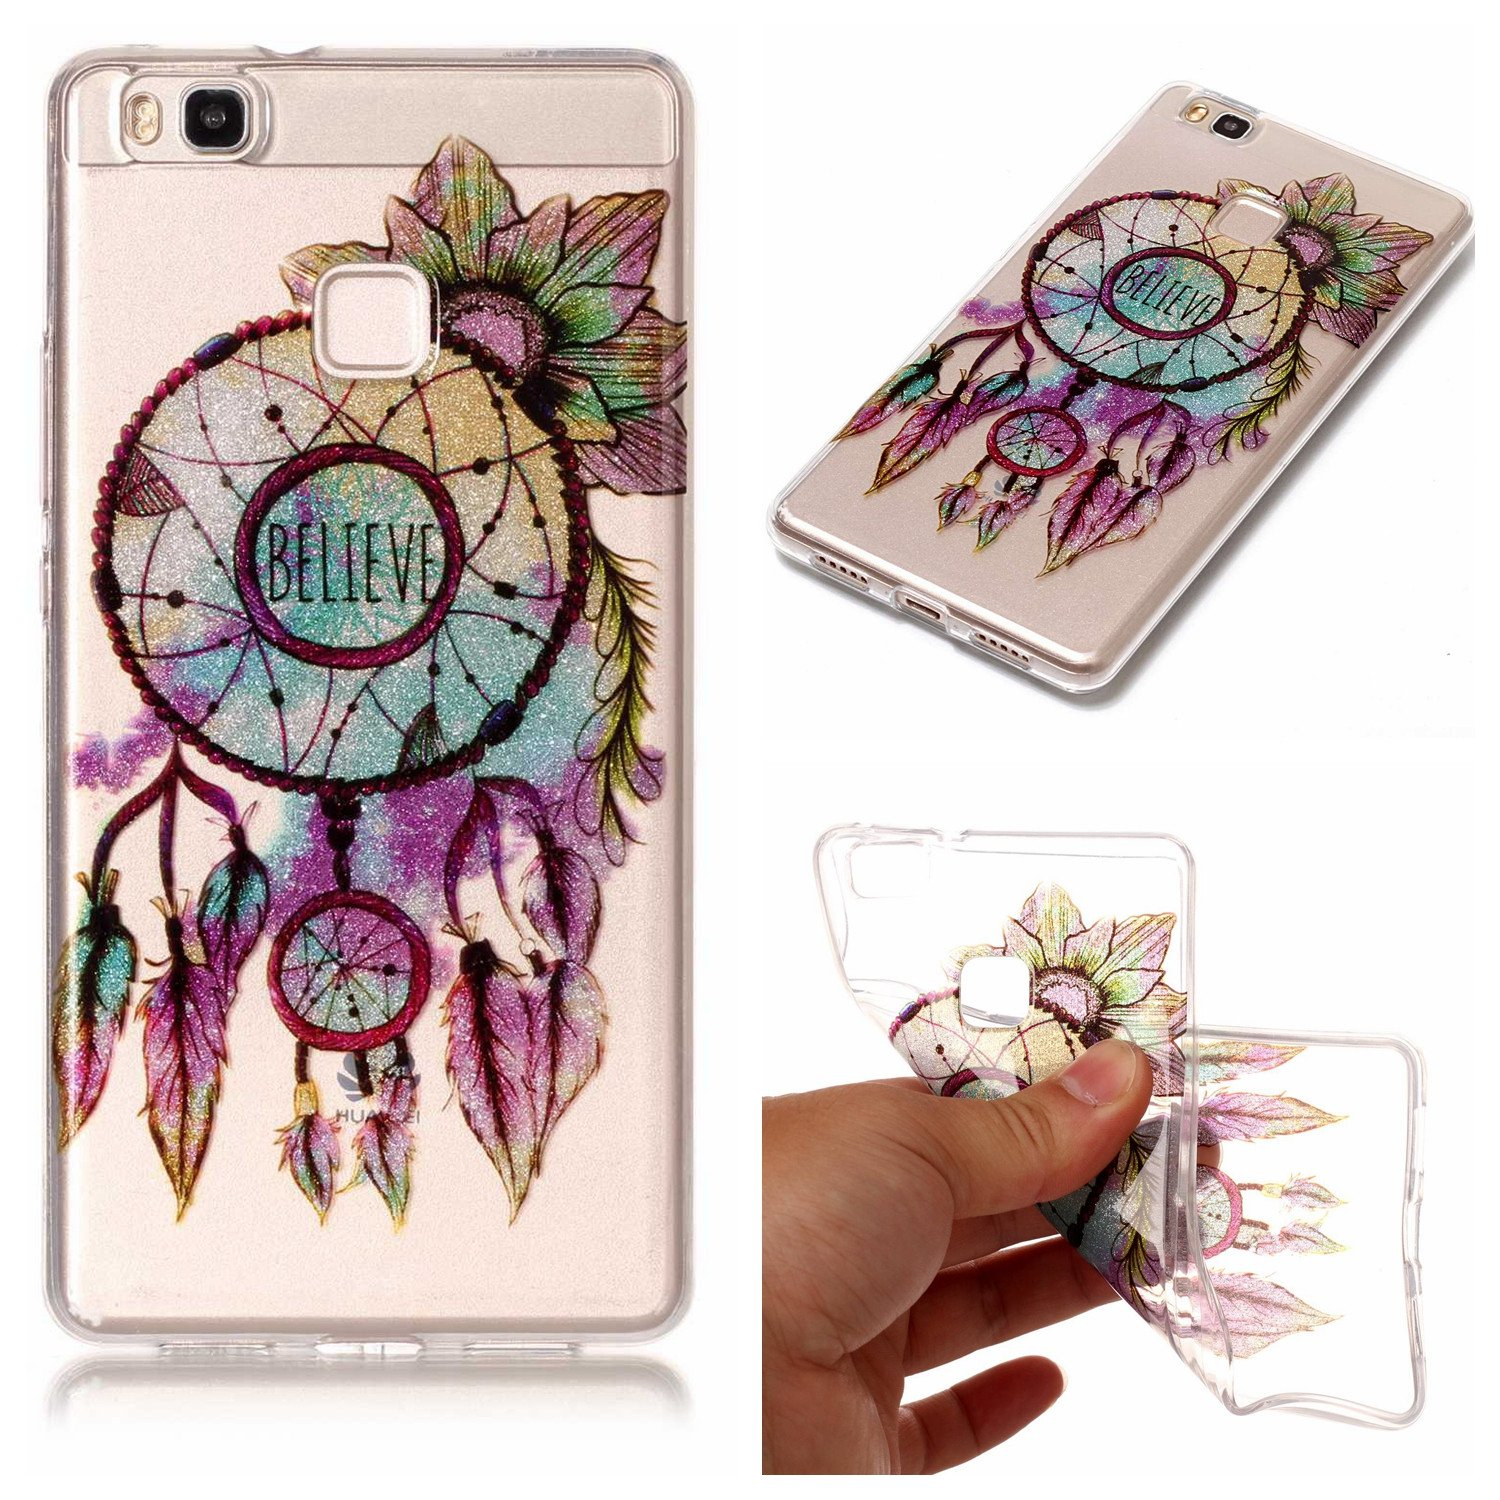 Aipyy Huawei P9 Lite Case,Transparent Pattern Soft TPU material back cover case for Huawei P9 Lite-Flower campanula